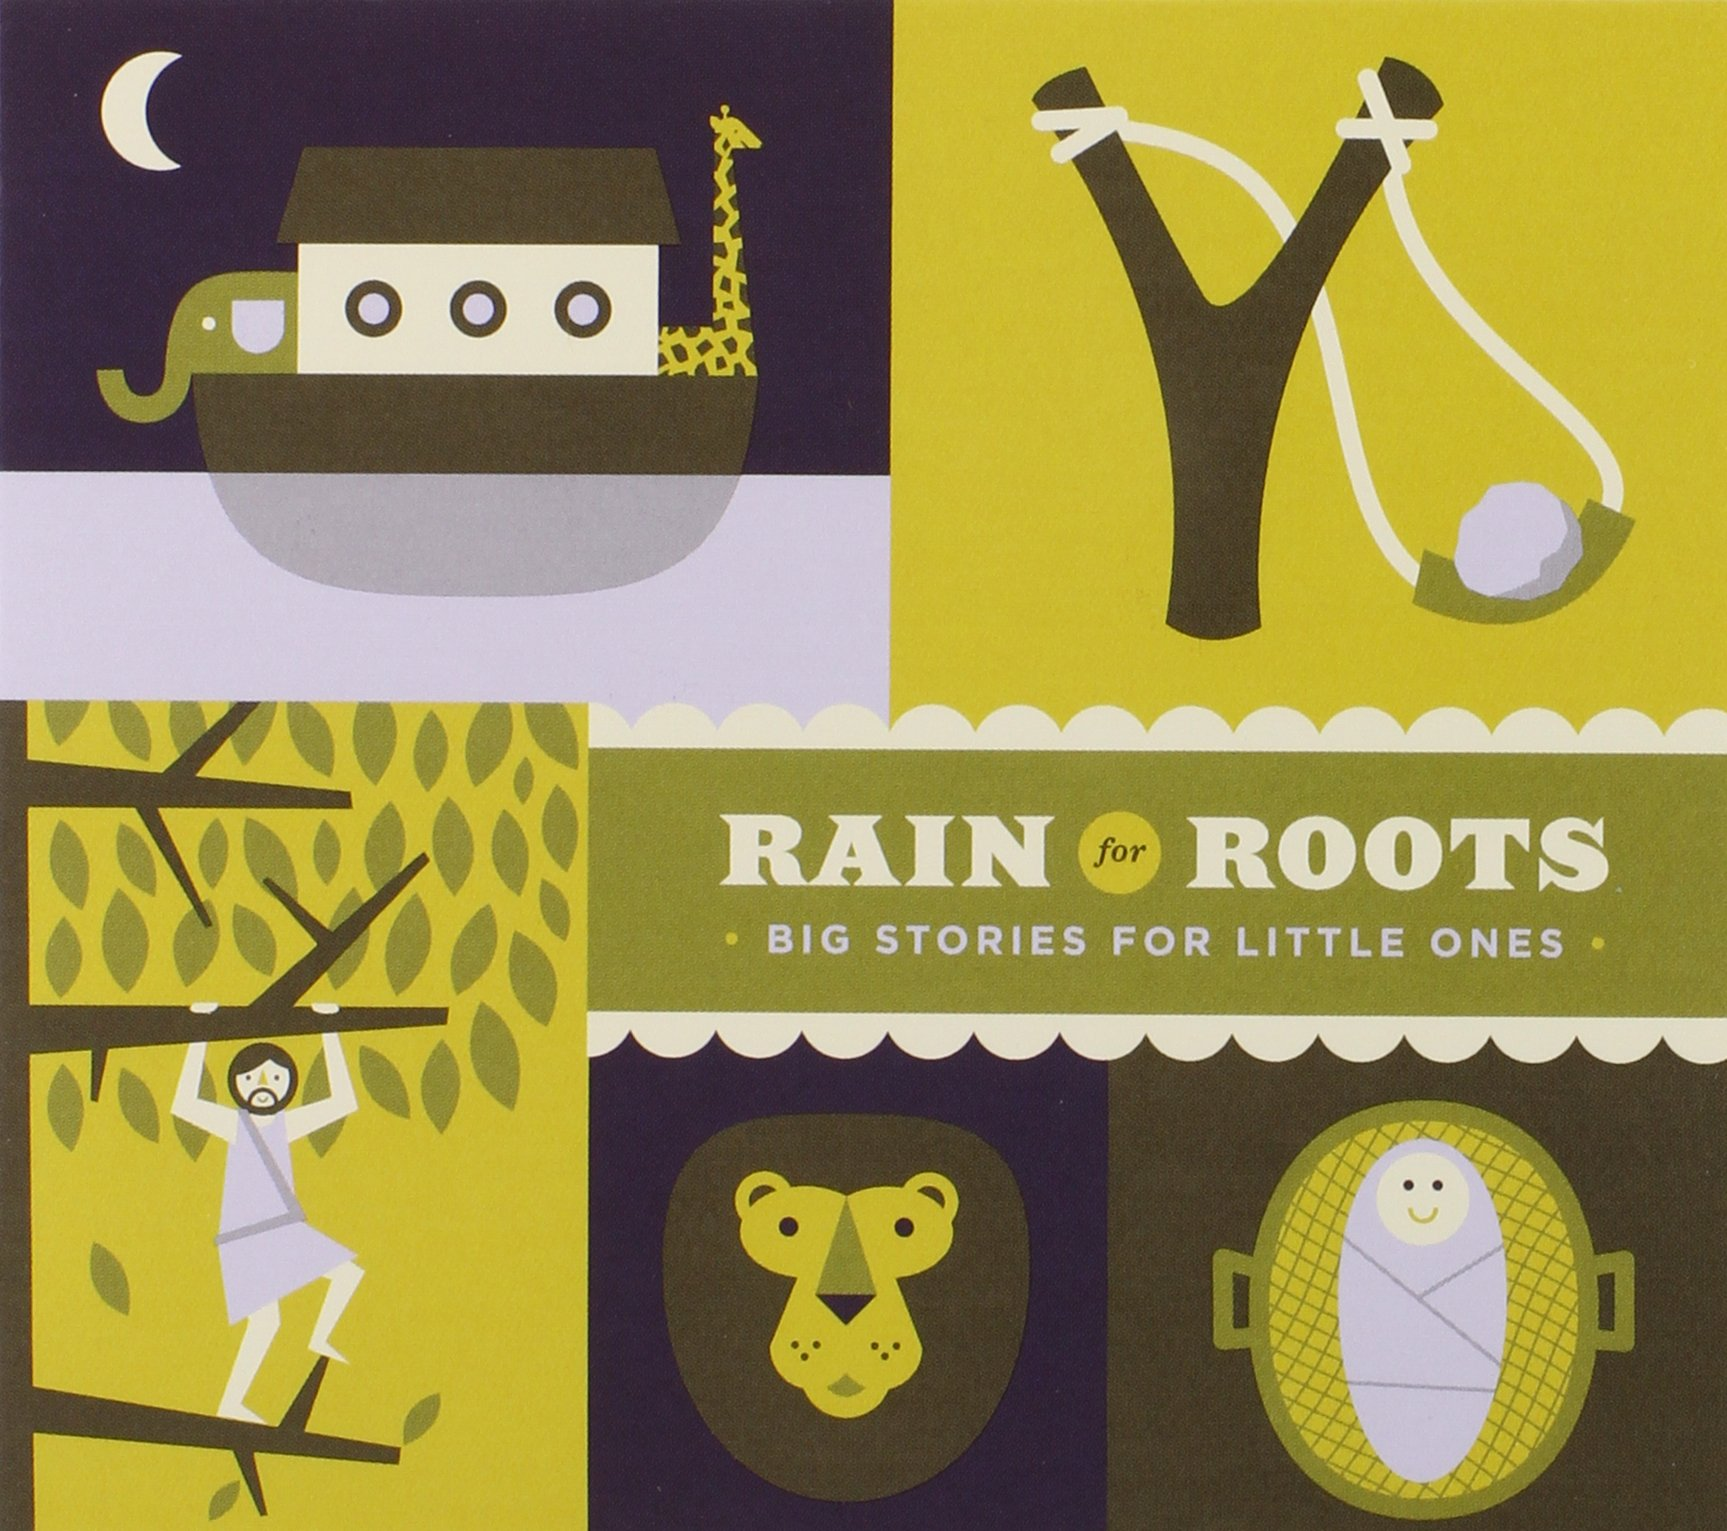 Big Stories for Little Ones by Rain for Roots